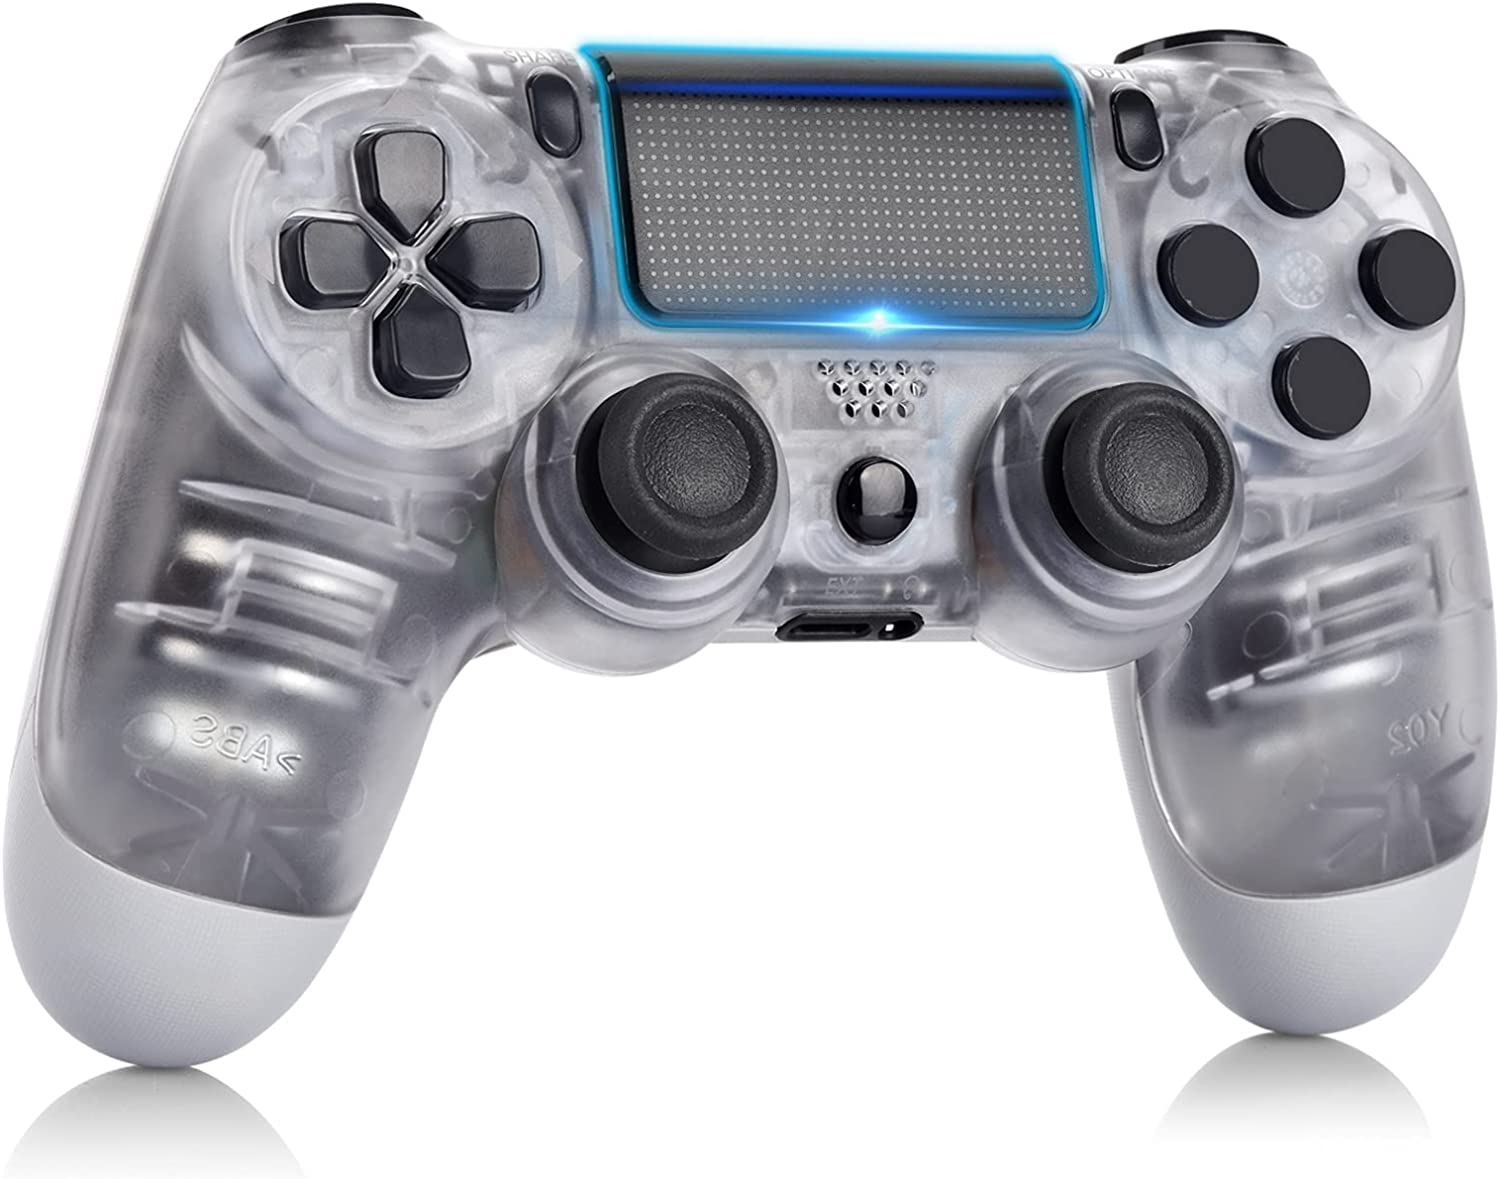 AUGEX Remote Compatible for P-4 Controller, Wireless Controller Work with P-4,with Dual Vibration/Stereo Headset Jack/Touch Pad Control,Compatible with P-4/Slim/Pro Console (Transparent White)